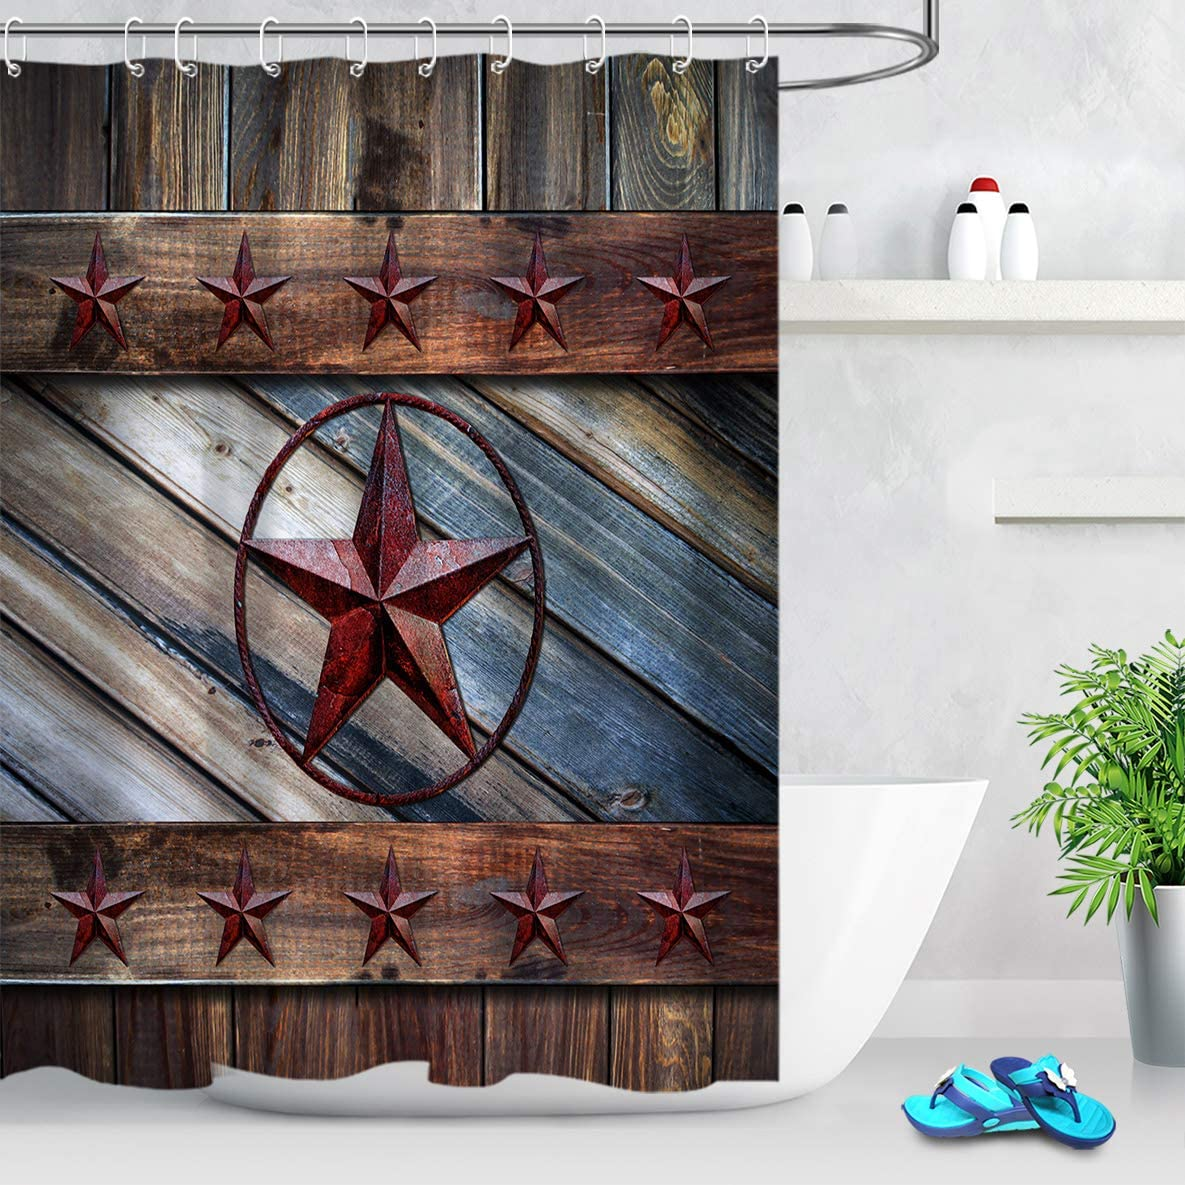 Amazon Com Ecotob Rustic Barn Star Shower Curtain Decor Country Style Farmhouse Western Texas Star On Wood Boards Shower Curtains 60x72 Inch Polyester Fabric Bathroom Decorations Bath Curtains Hooks Included Furniture Decor,What Color Shirt Matches With Olive Green Pants